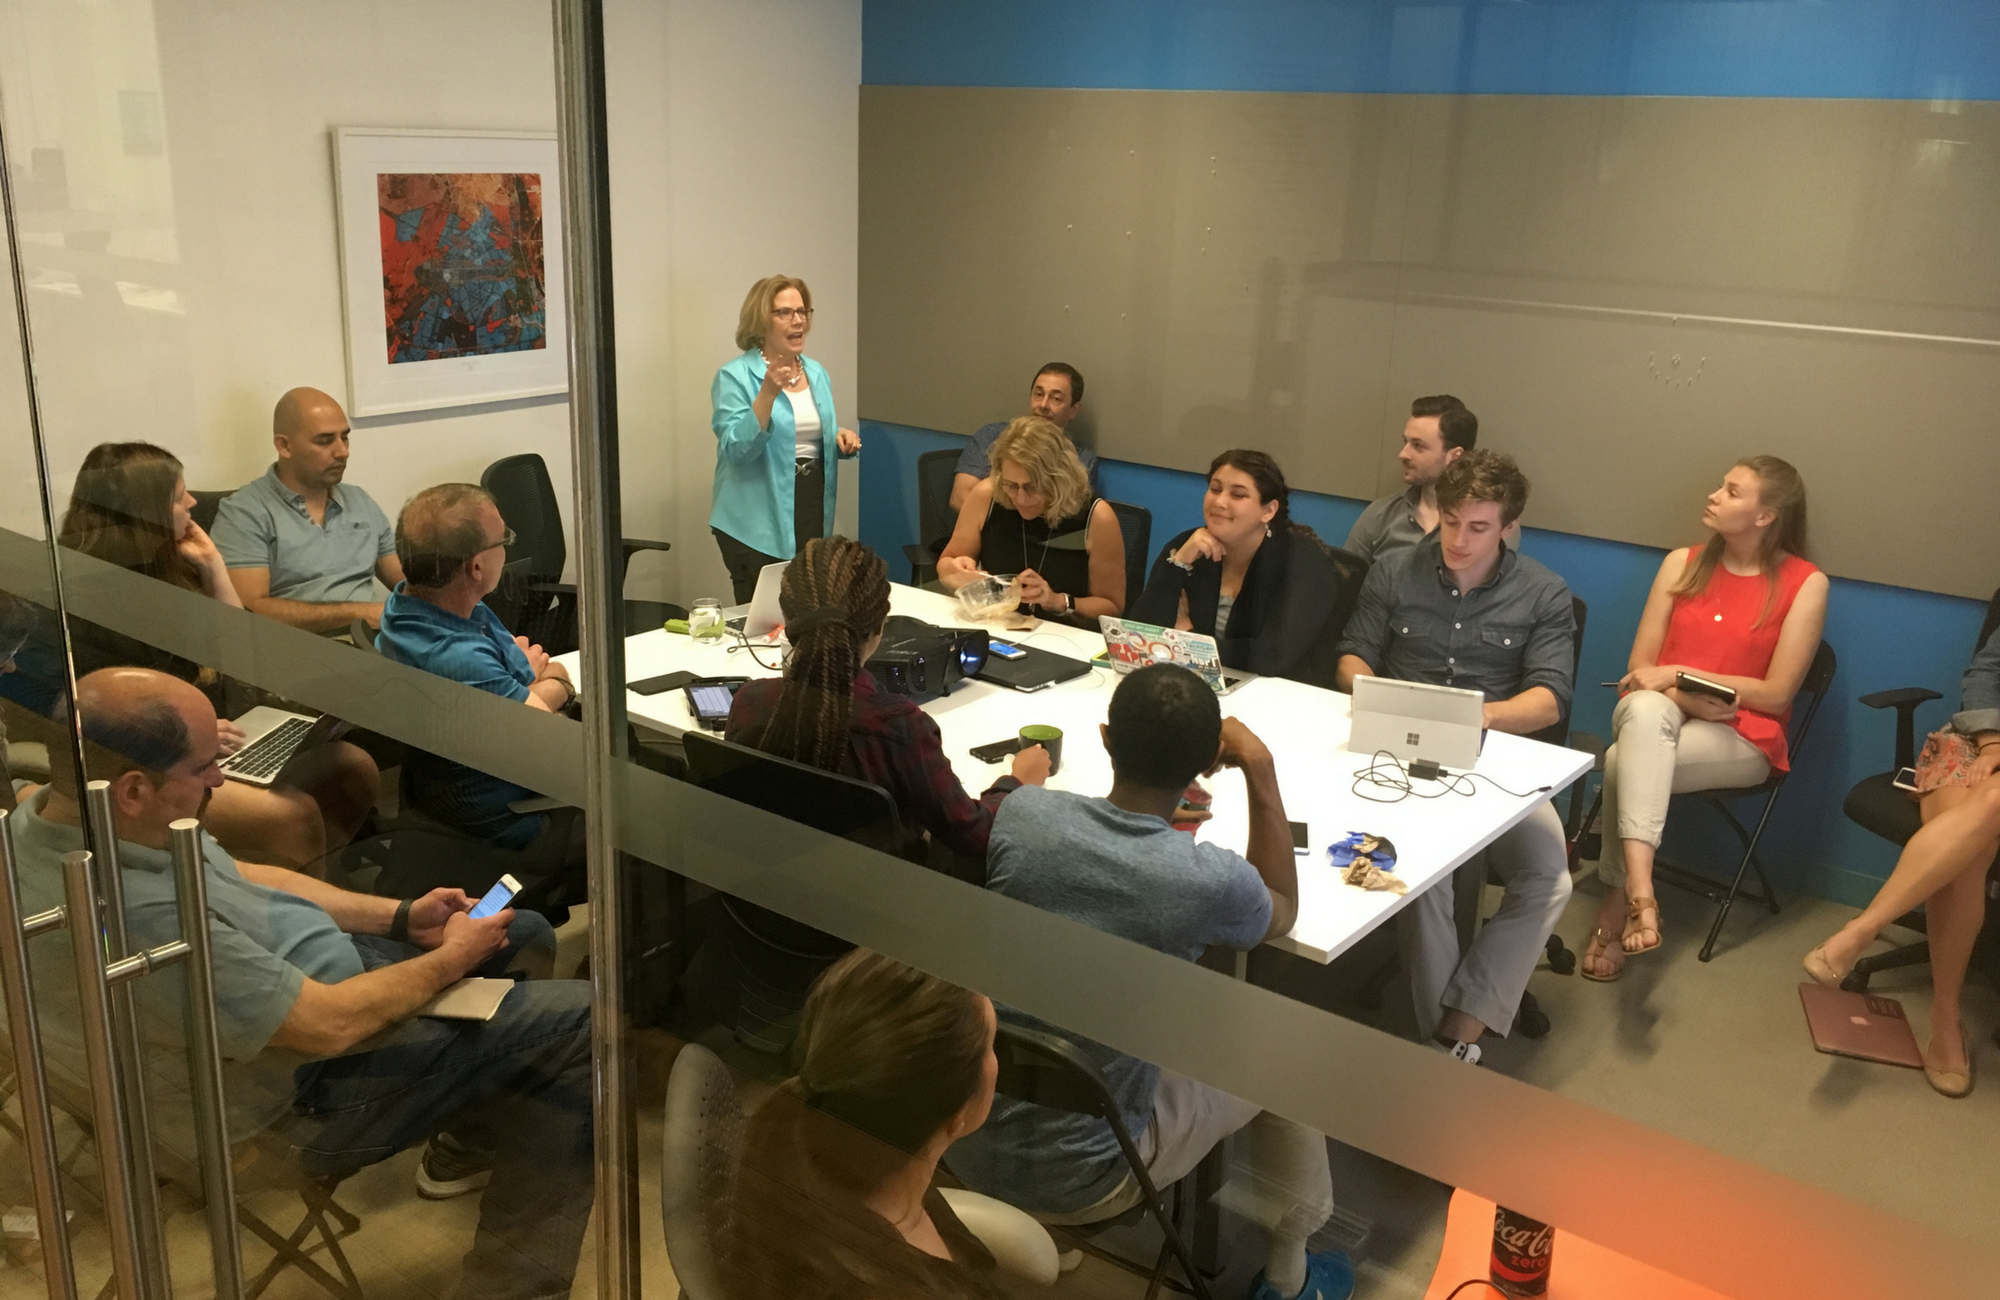 Lunch & Learn with Karen Miller, Founder of Do Ink